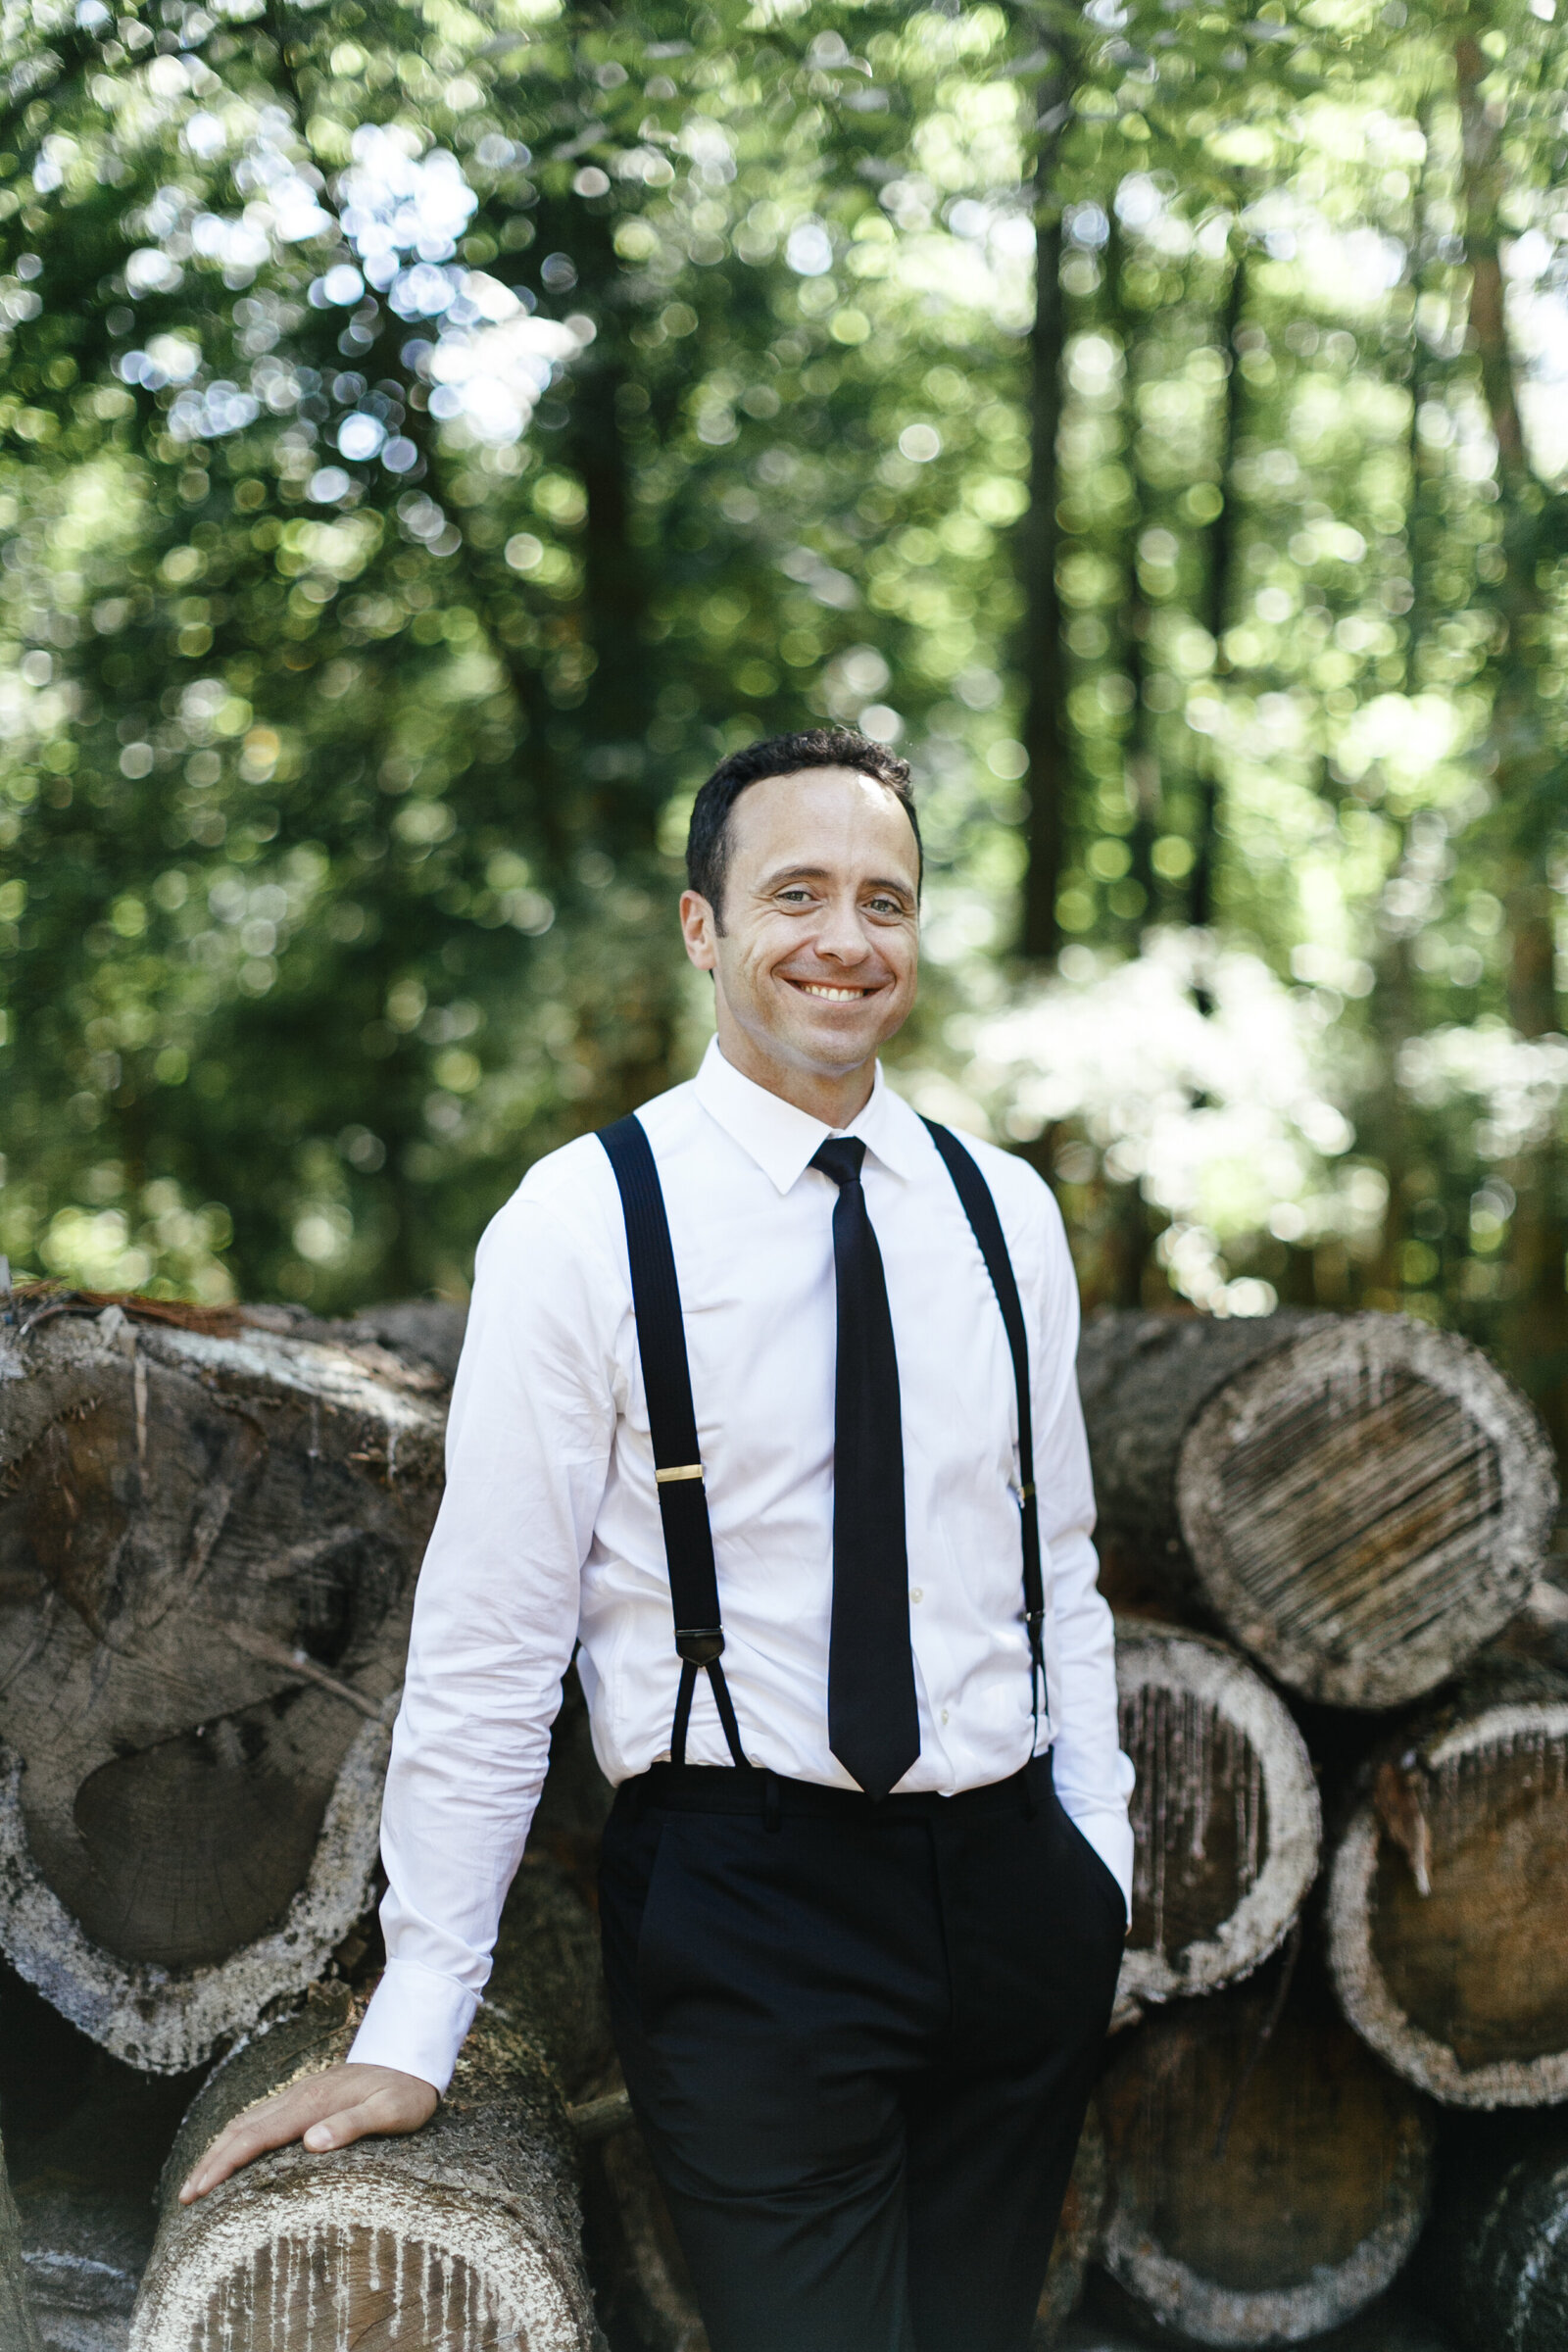 groom with suspenders at farm with wood pile